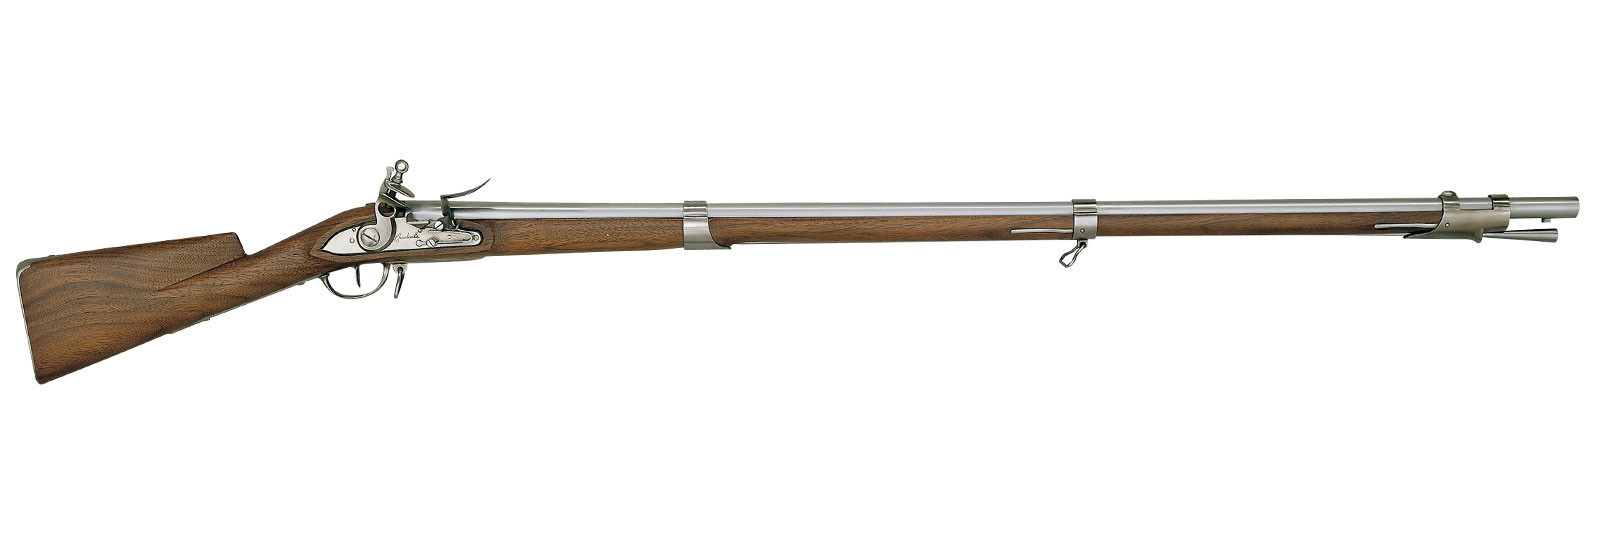 1763 Leger (1766) Charleville Rifle